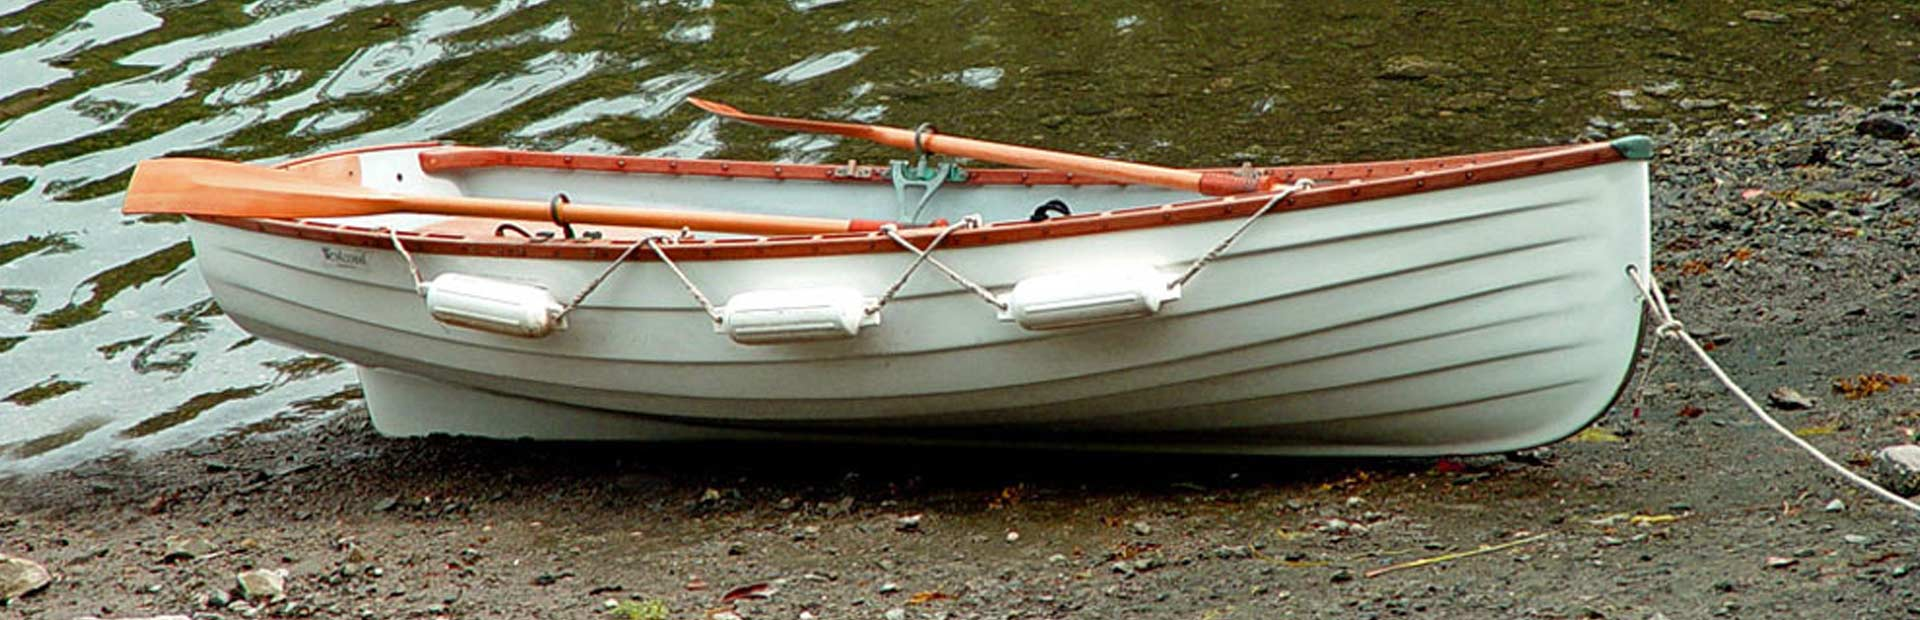 Small rowboat landed on the shore by a lake.